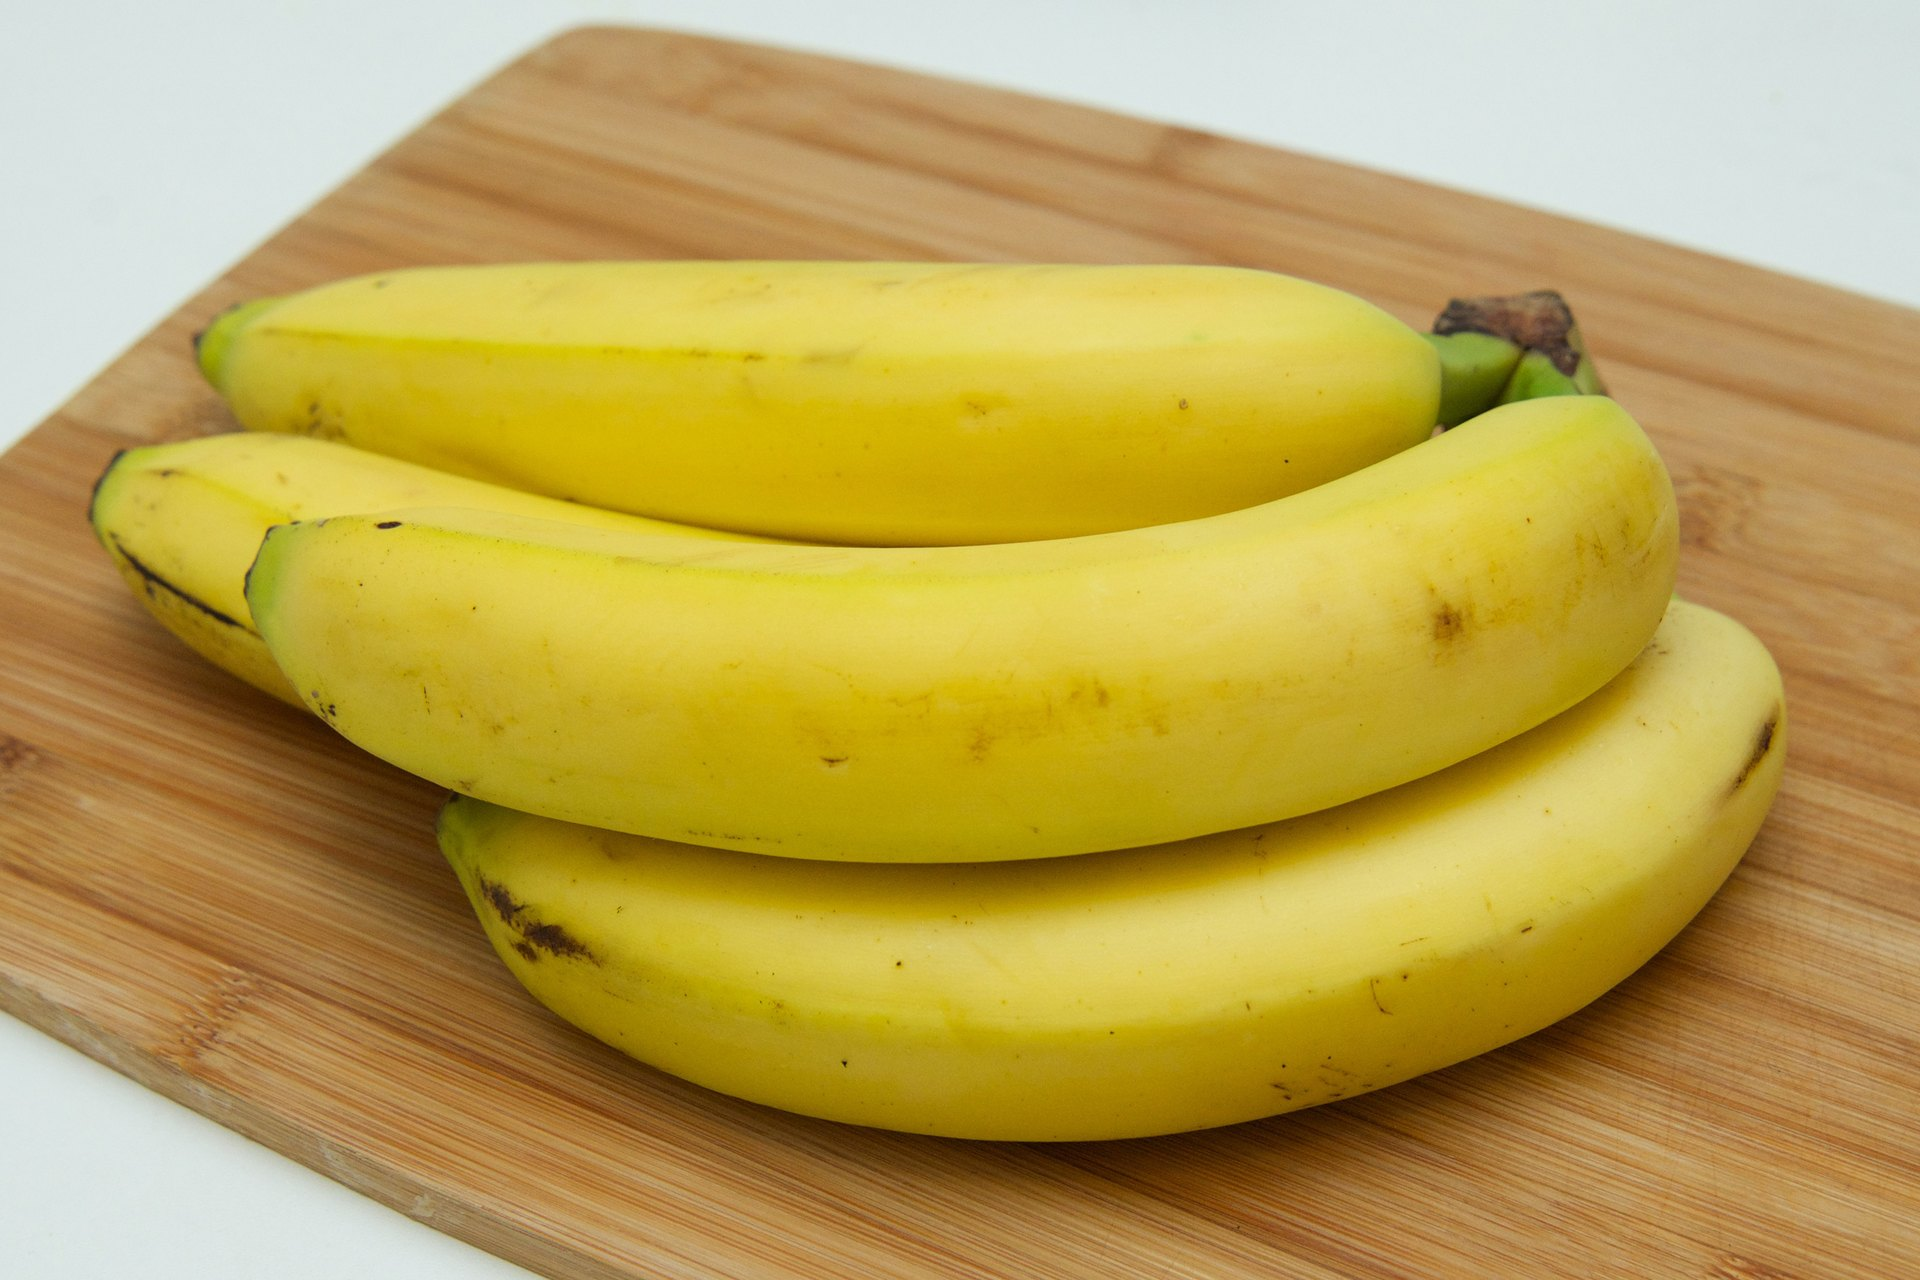 How to tell if a banana has gone bad livestrong buycottarizona Choice Image